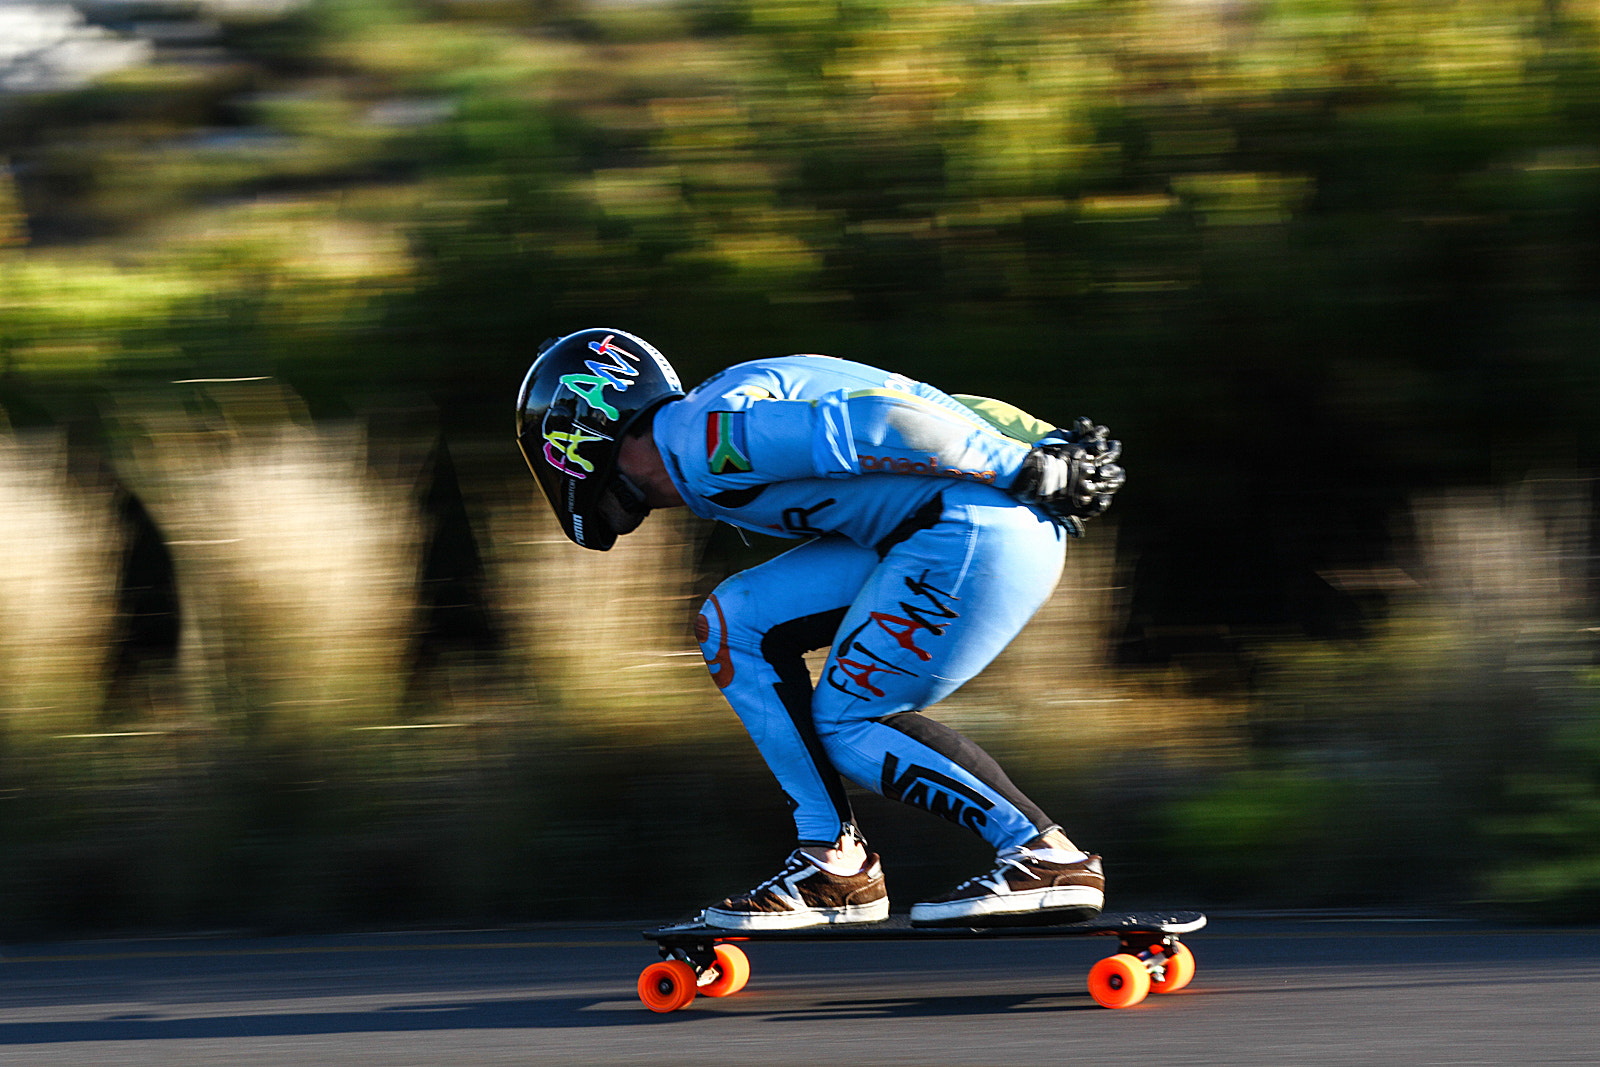 Photograph Houwteq downhill race by Robin Taylor on 500px